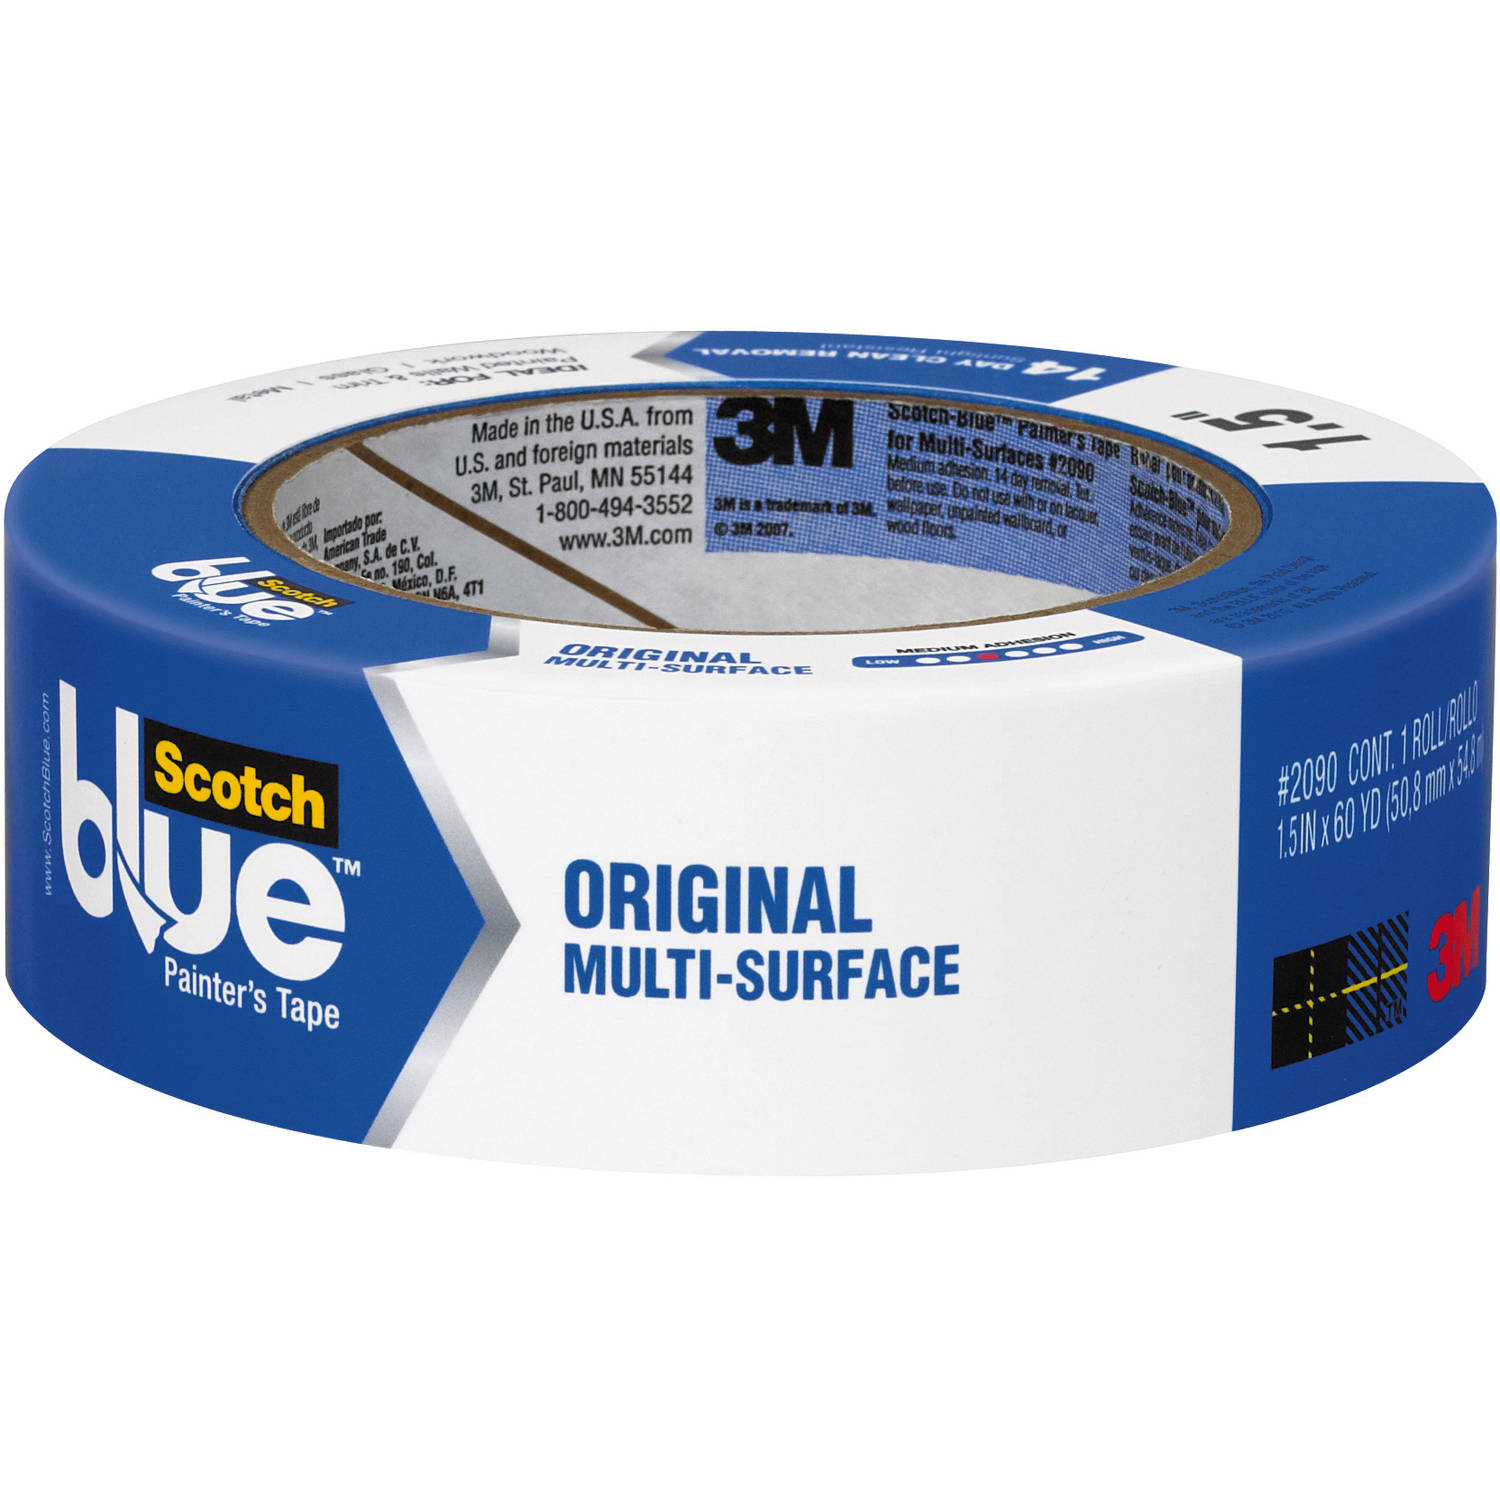 ScotchBlue Painter's Tape Original Multi-Use, 1.41in x 60yd(36mm x 54,8m